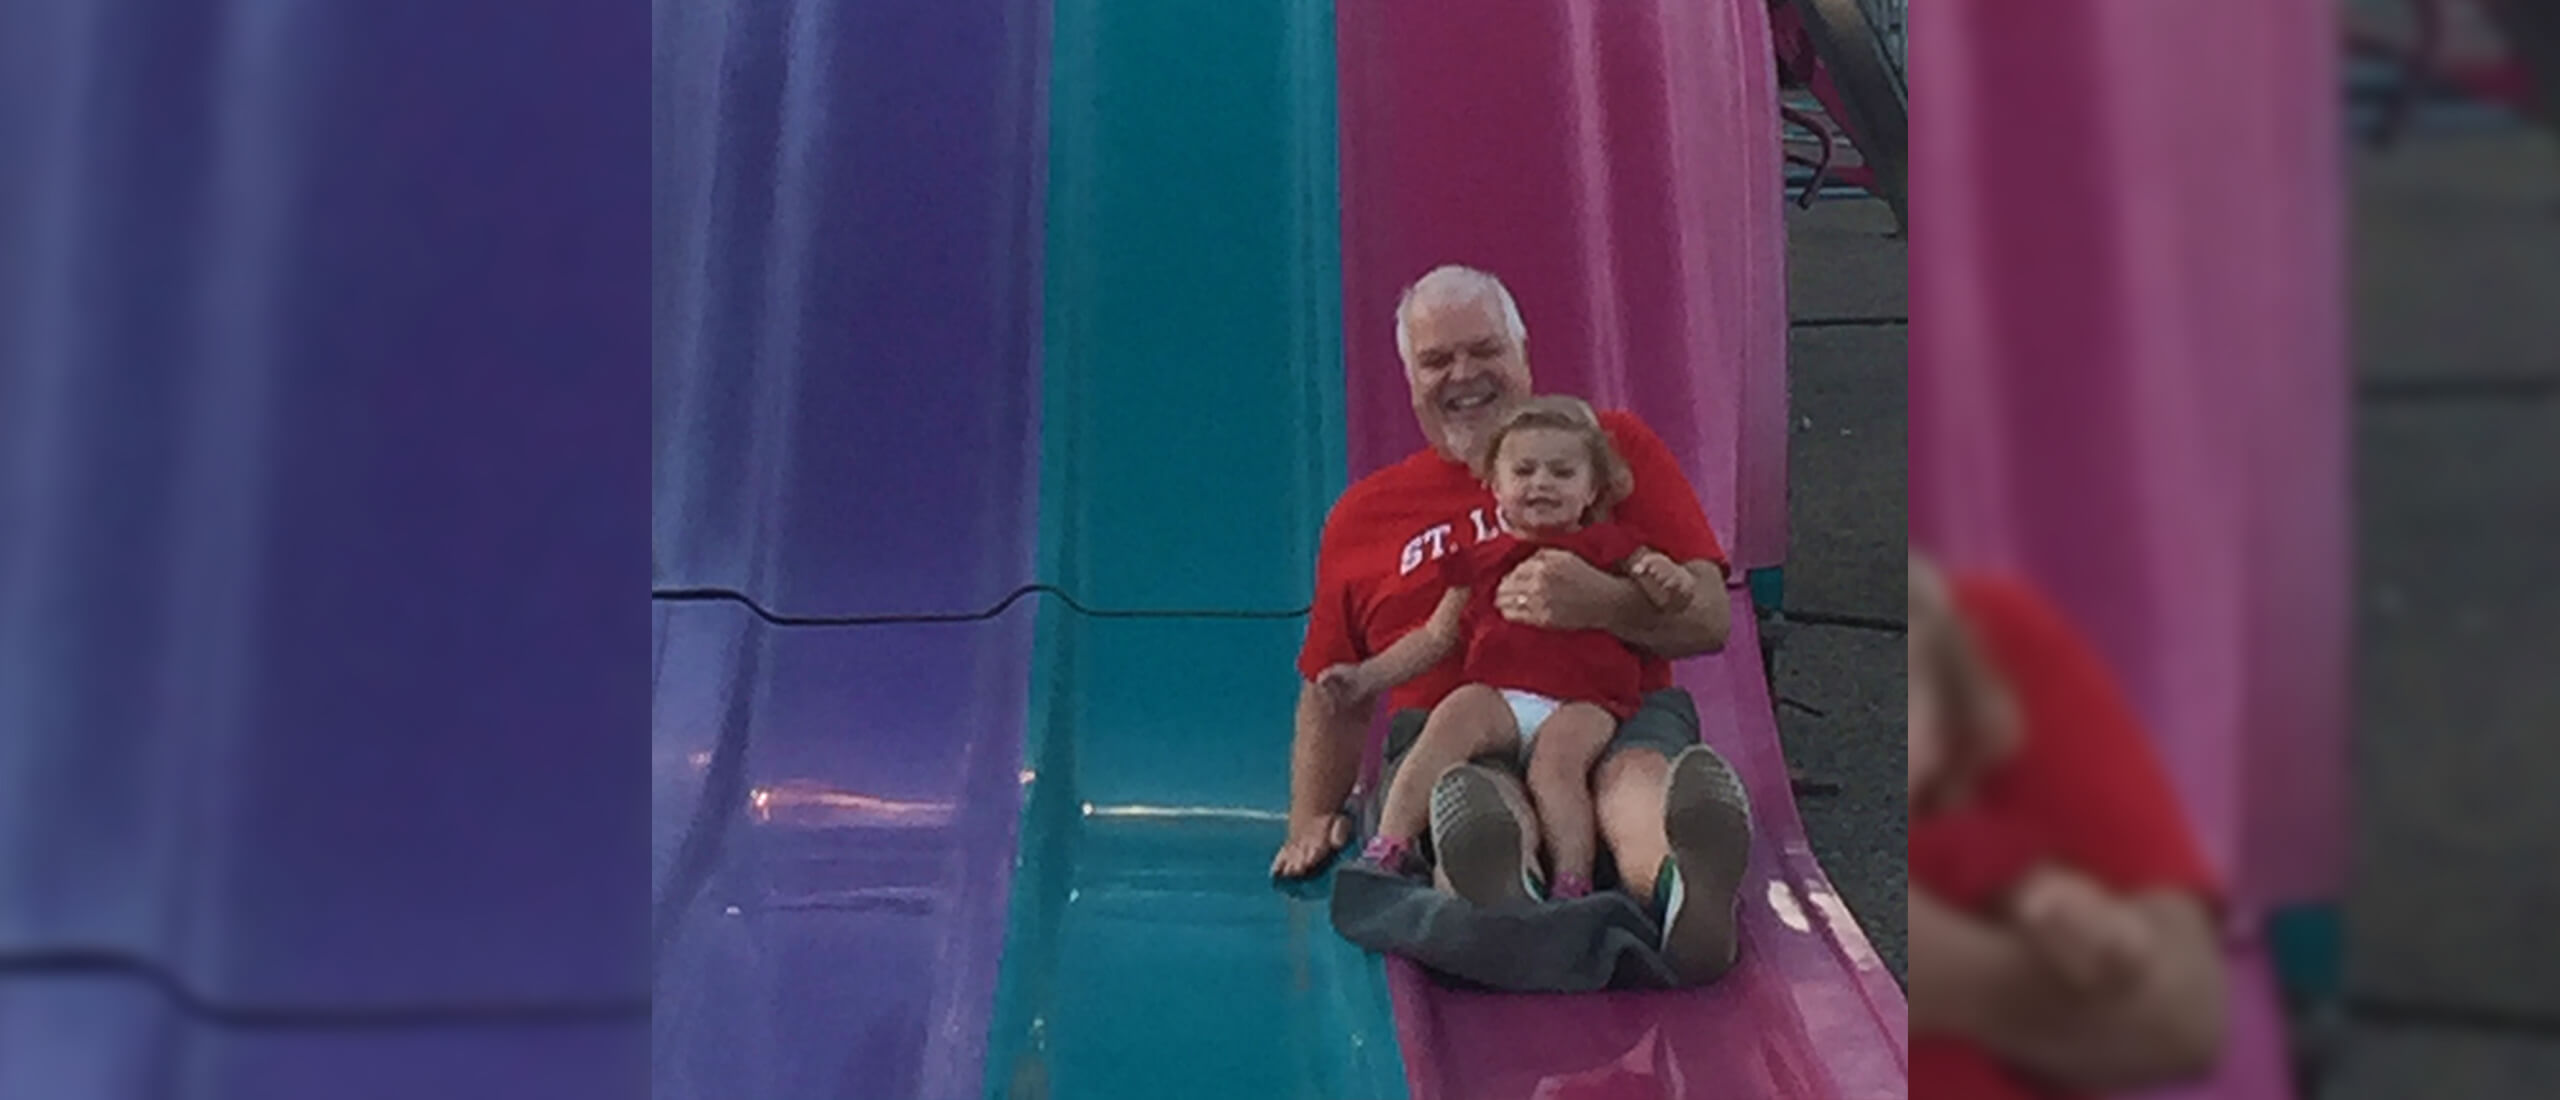 Pawpaw Rides the Slide - John Lowery